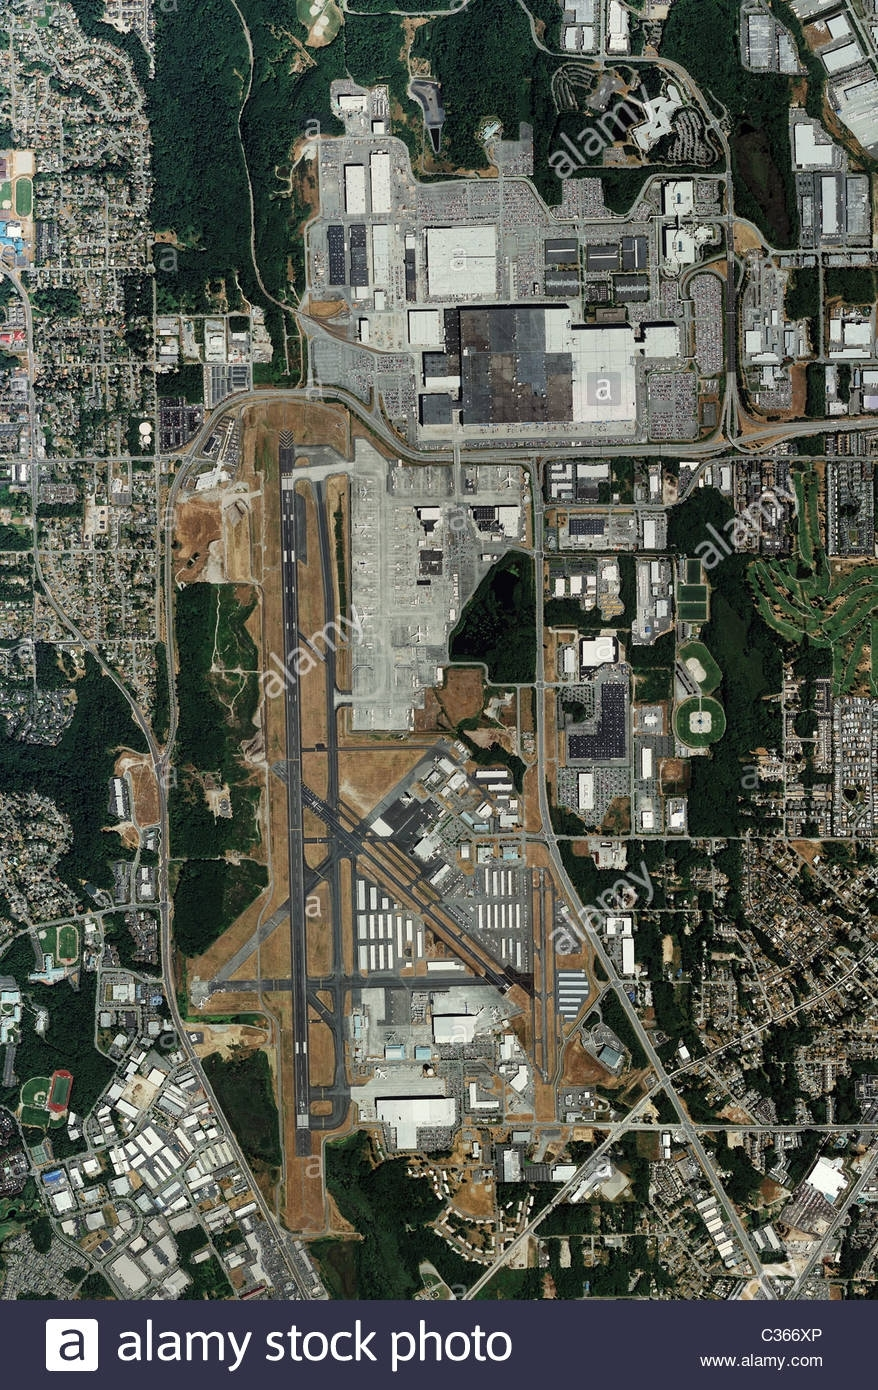 Aerial Map View Boeing Everett Factory And Paine Field regarding Boeing Factory Map